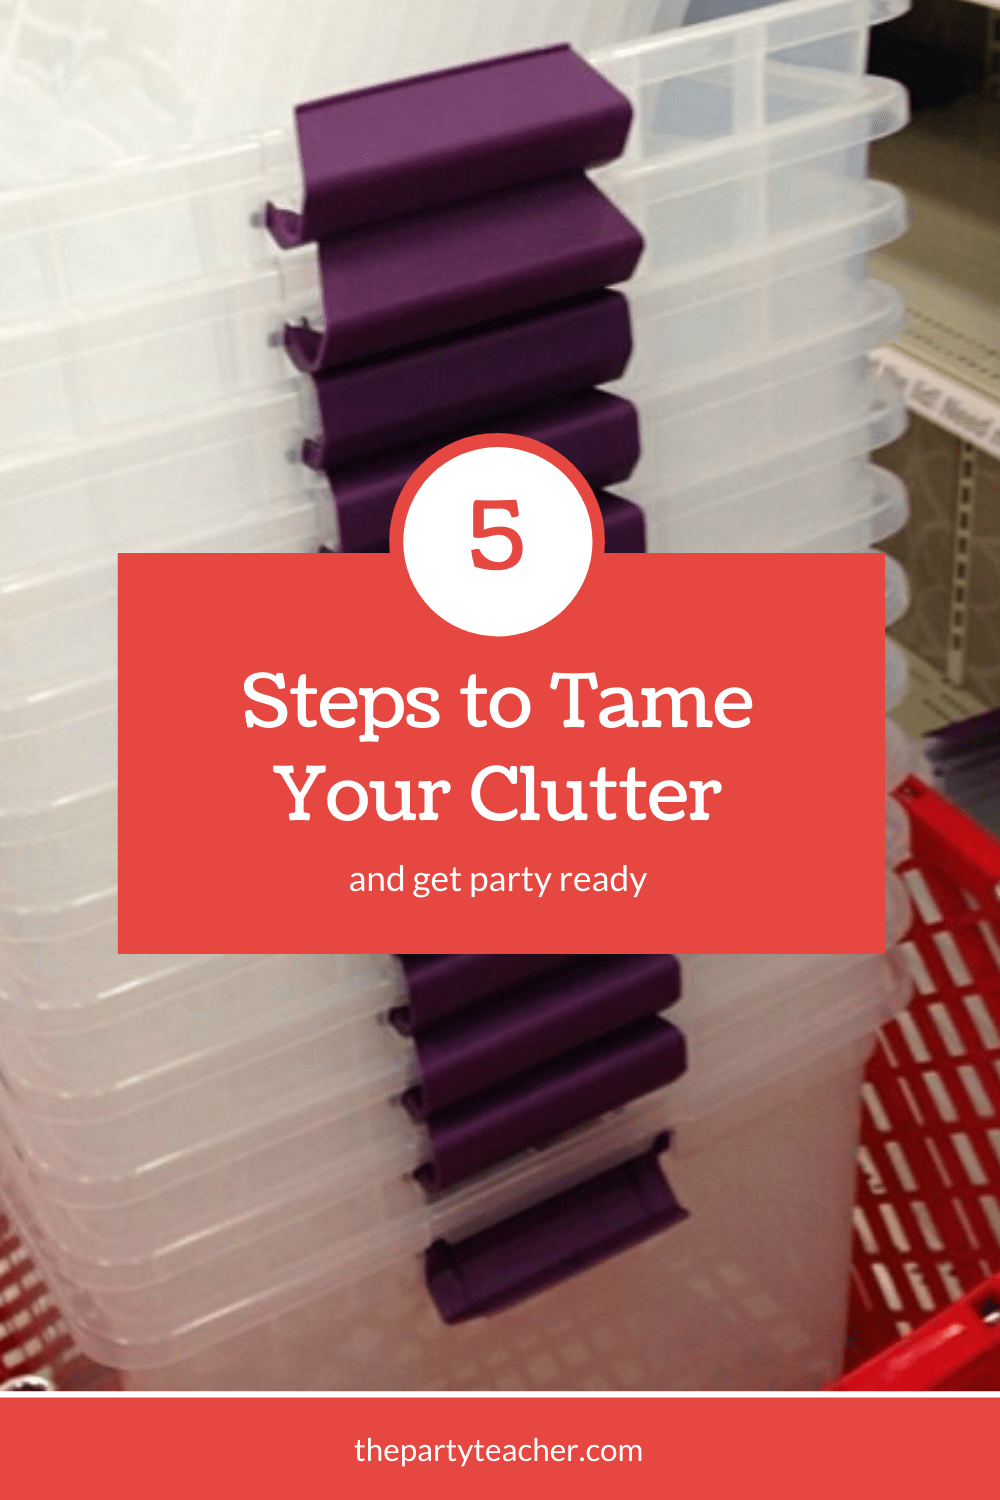 5 steps to tame your clutter and get party ready